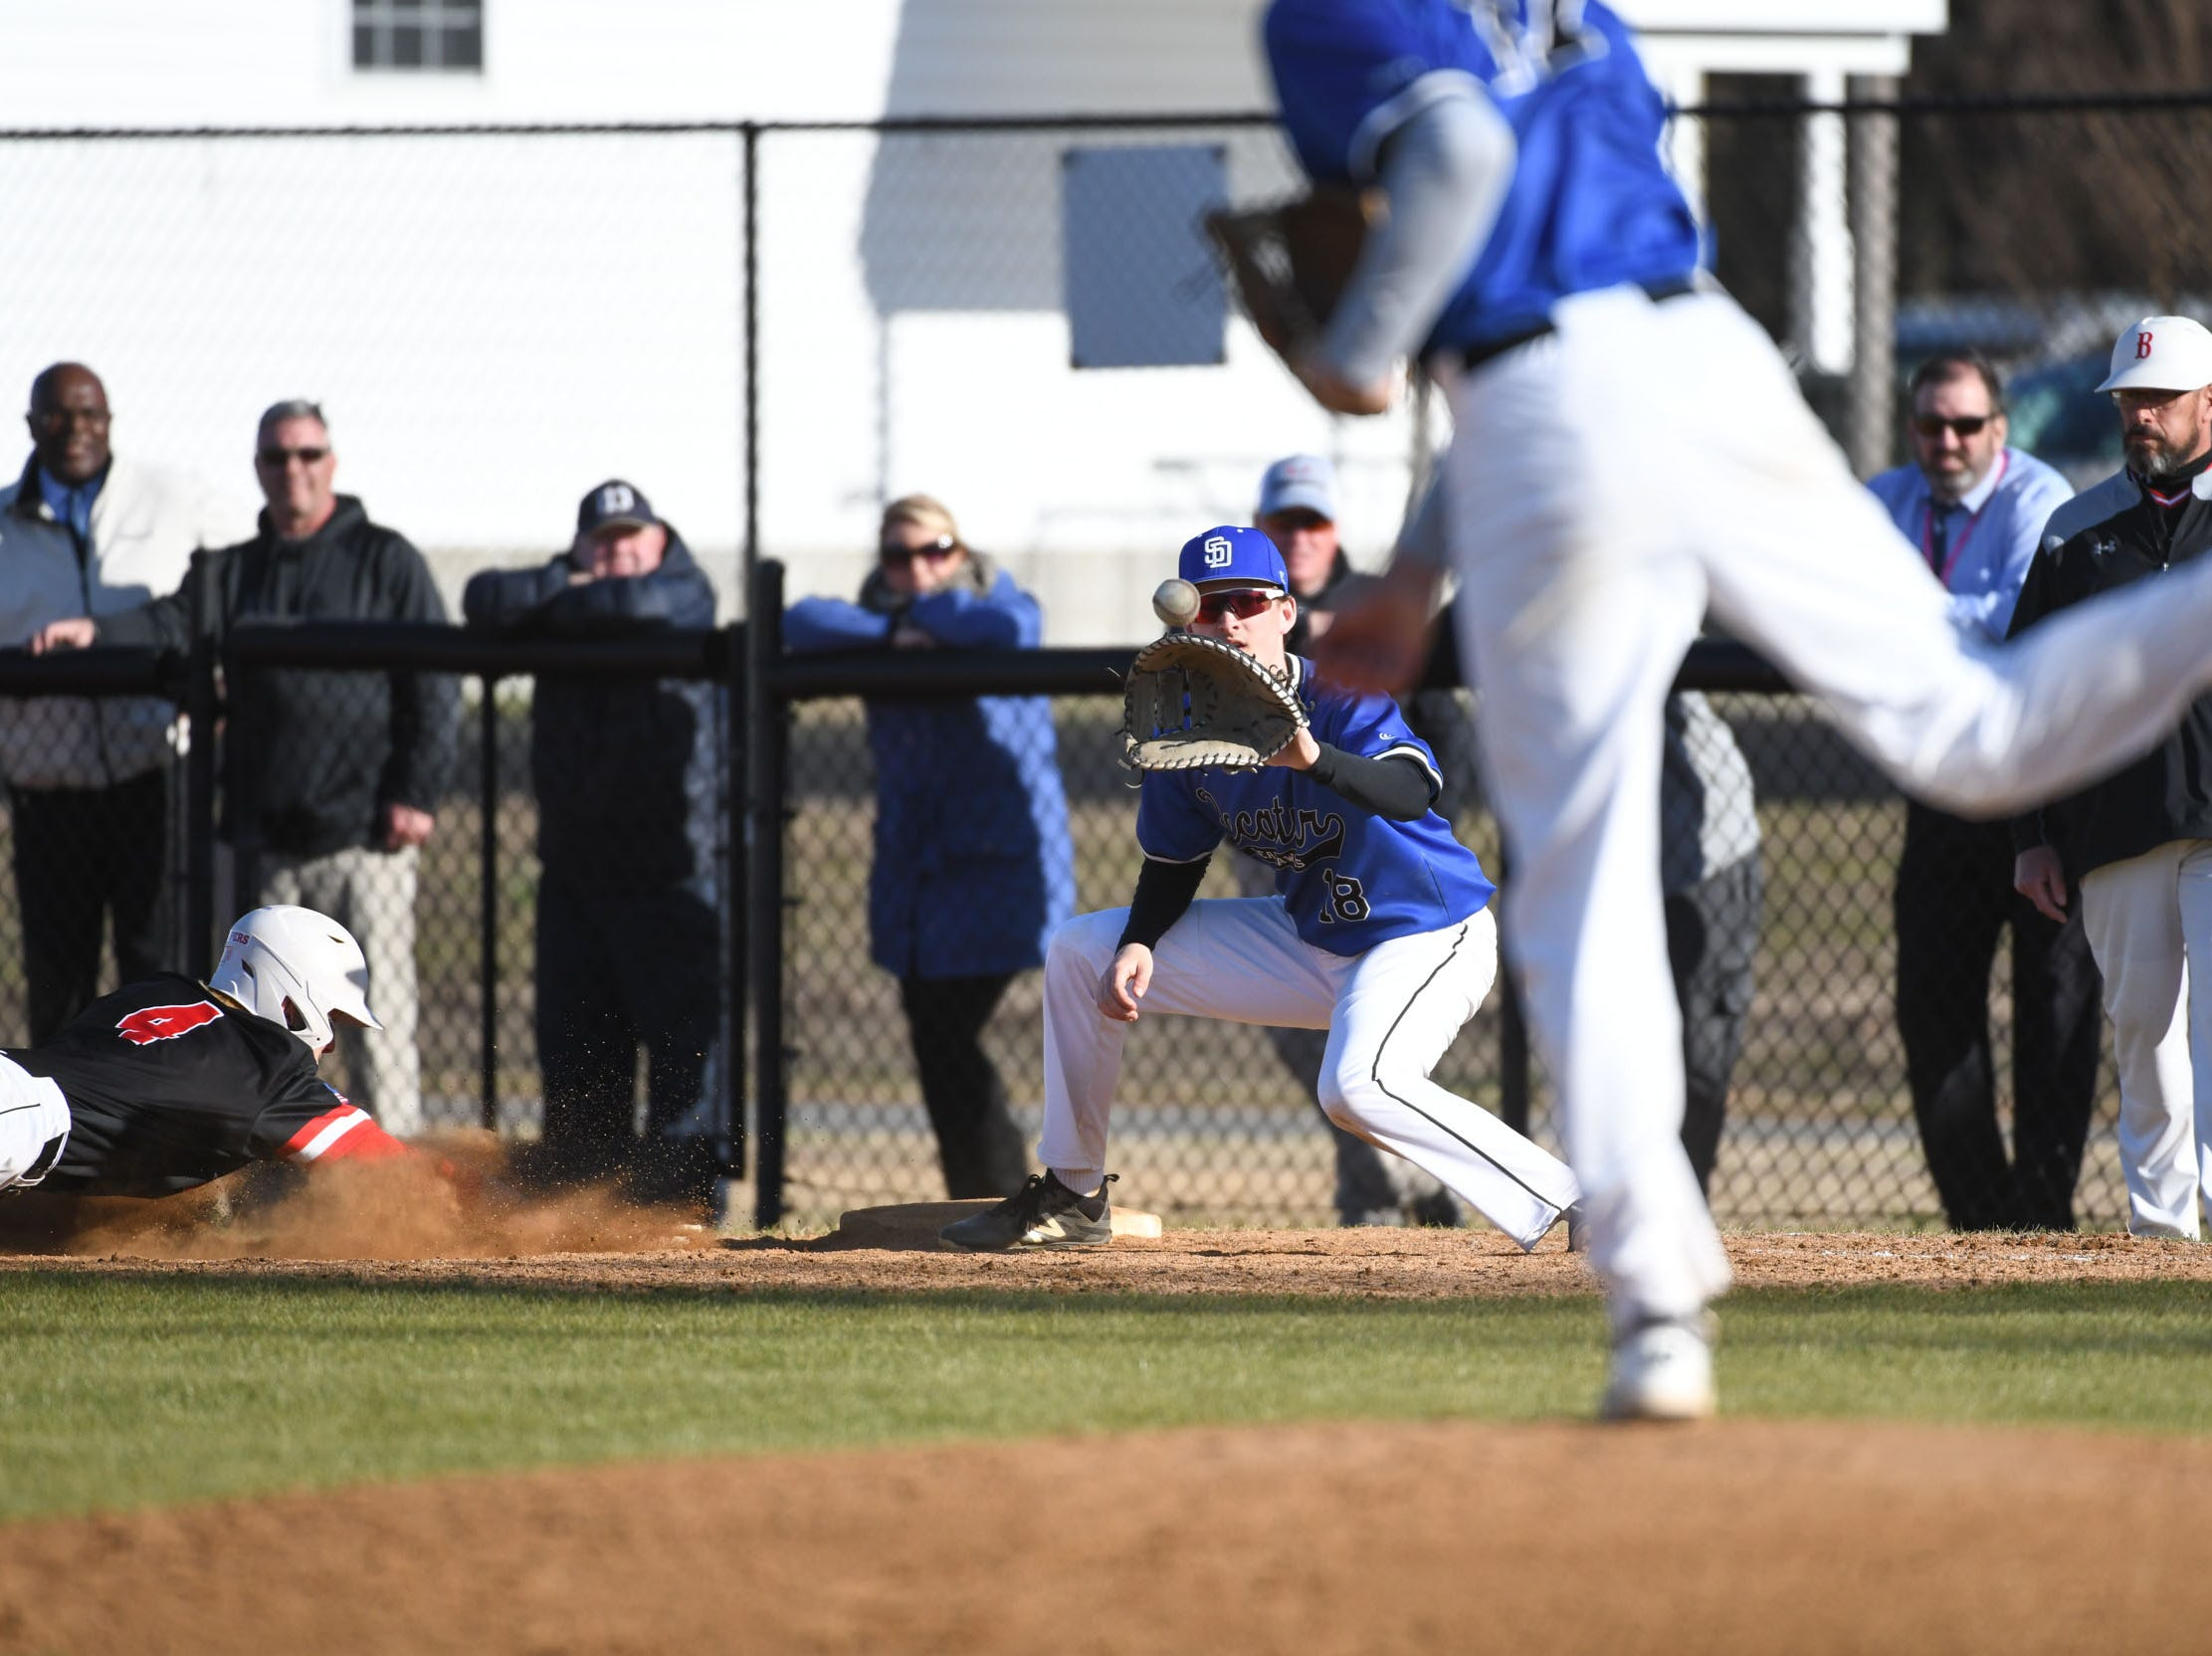 Stephen Decatur's Alex Gaddis with the pick off attempt  against Bennett on Thursday, March 28, 2019 in Salisbury, Md.